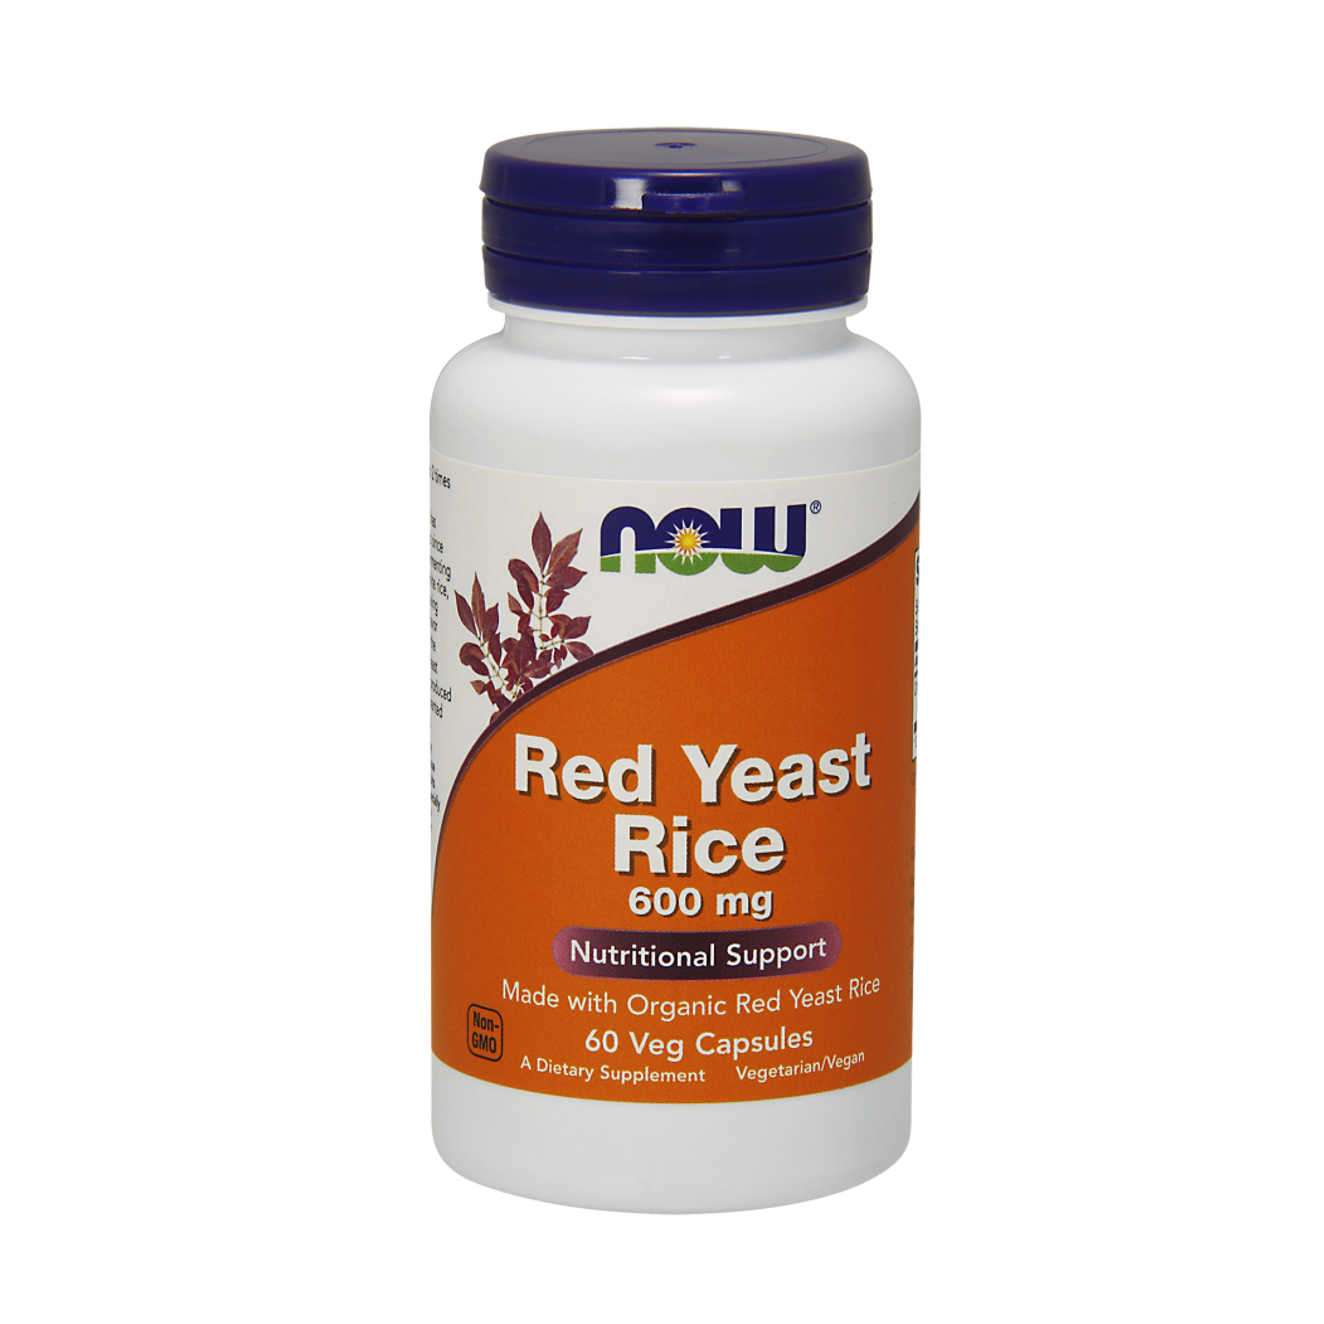 RED YEAST RICE 600mg NOW FOODS- 60 veg caps